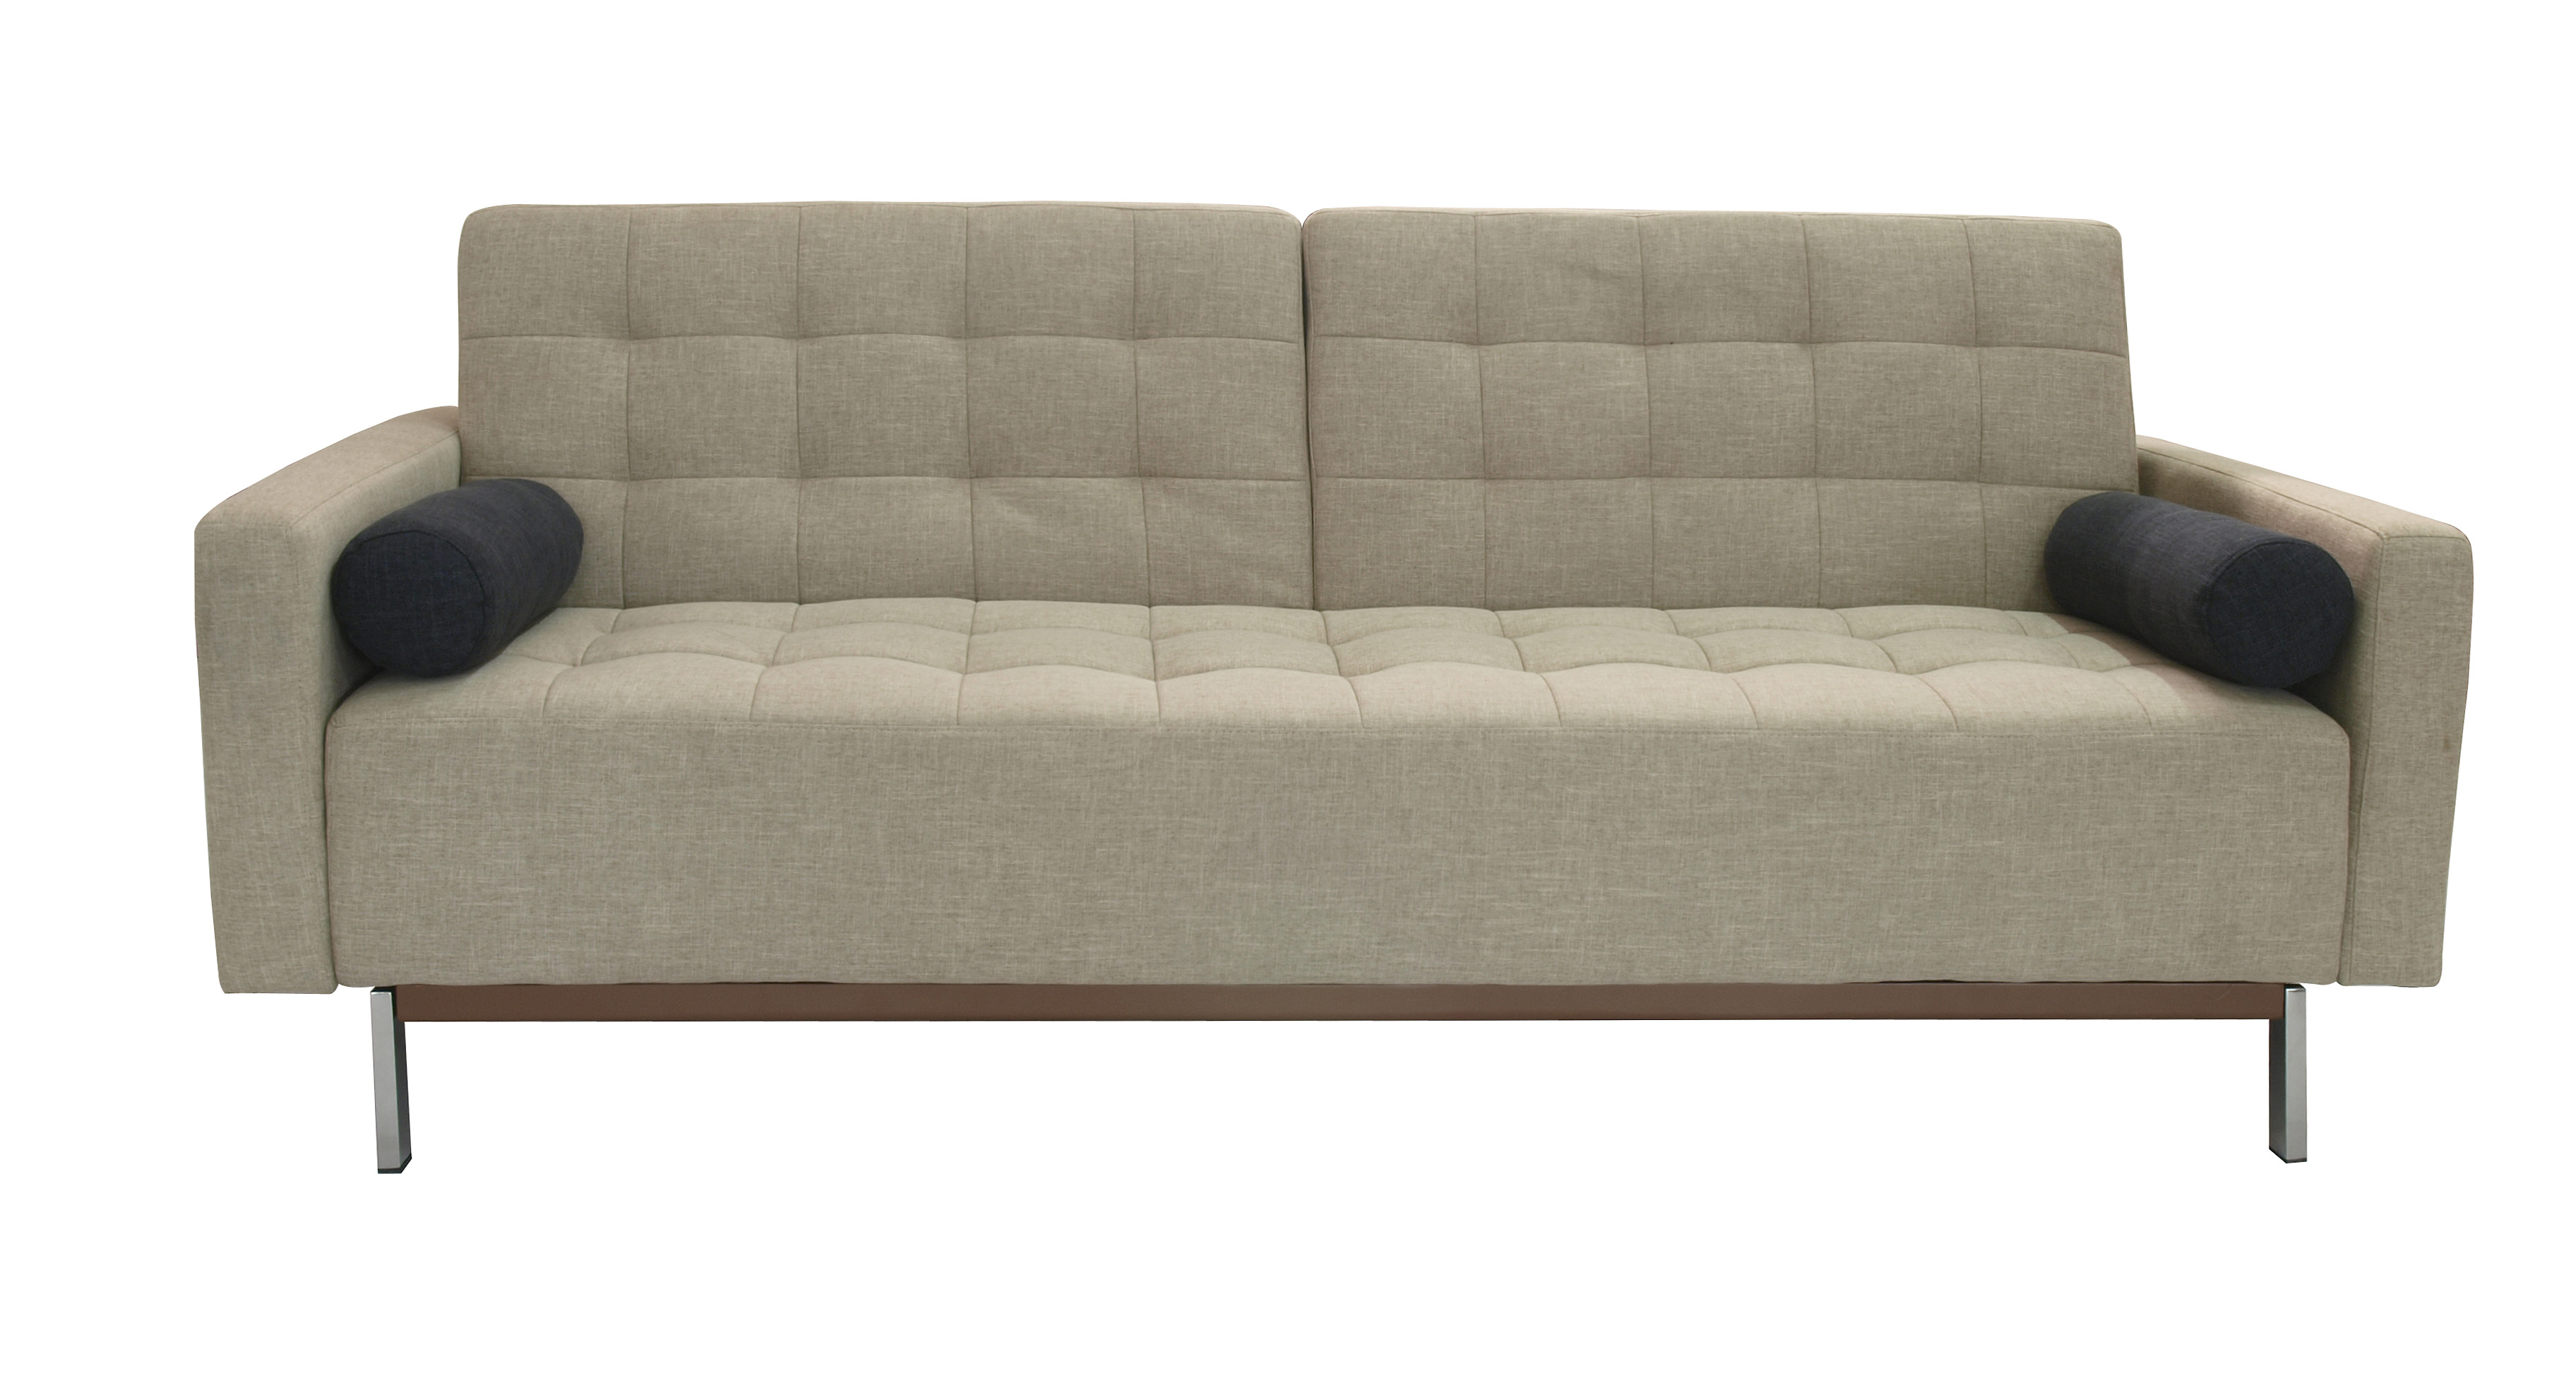 Beige Or Grey Contemporary Tufted Fabric Sofa Bed Santa Ana California Ahm123